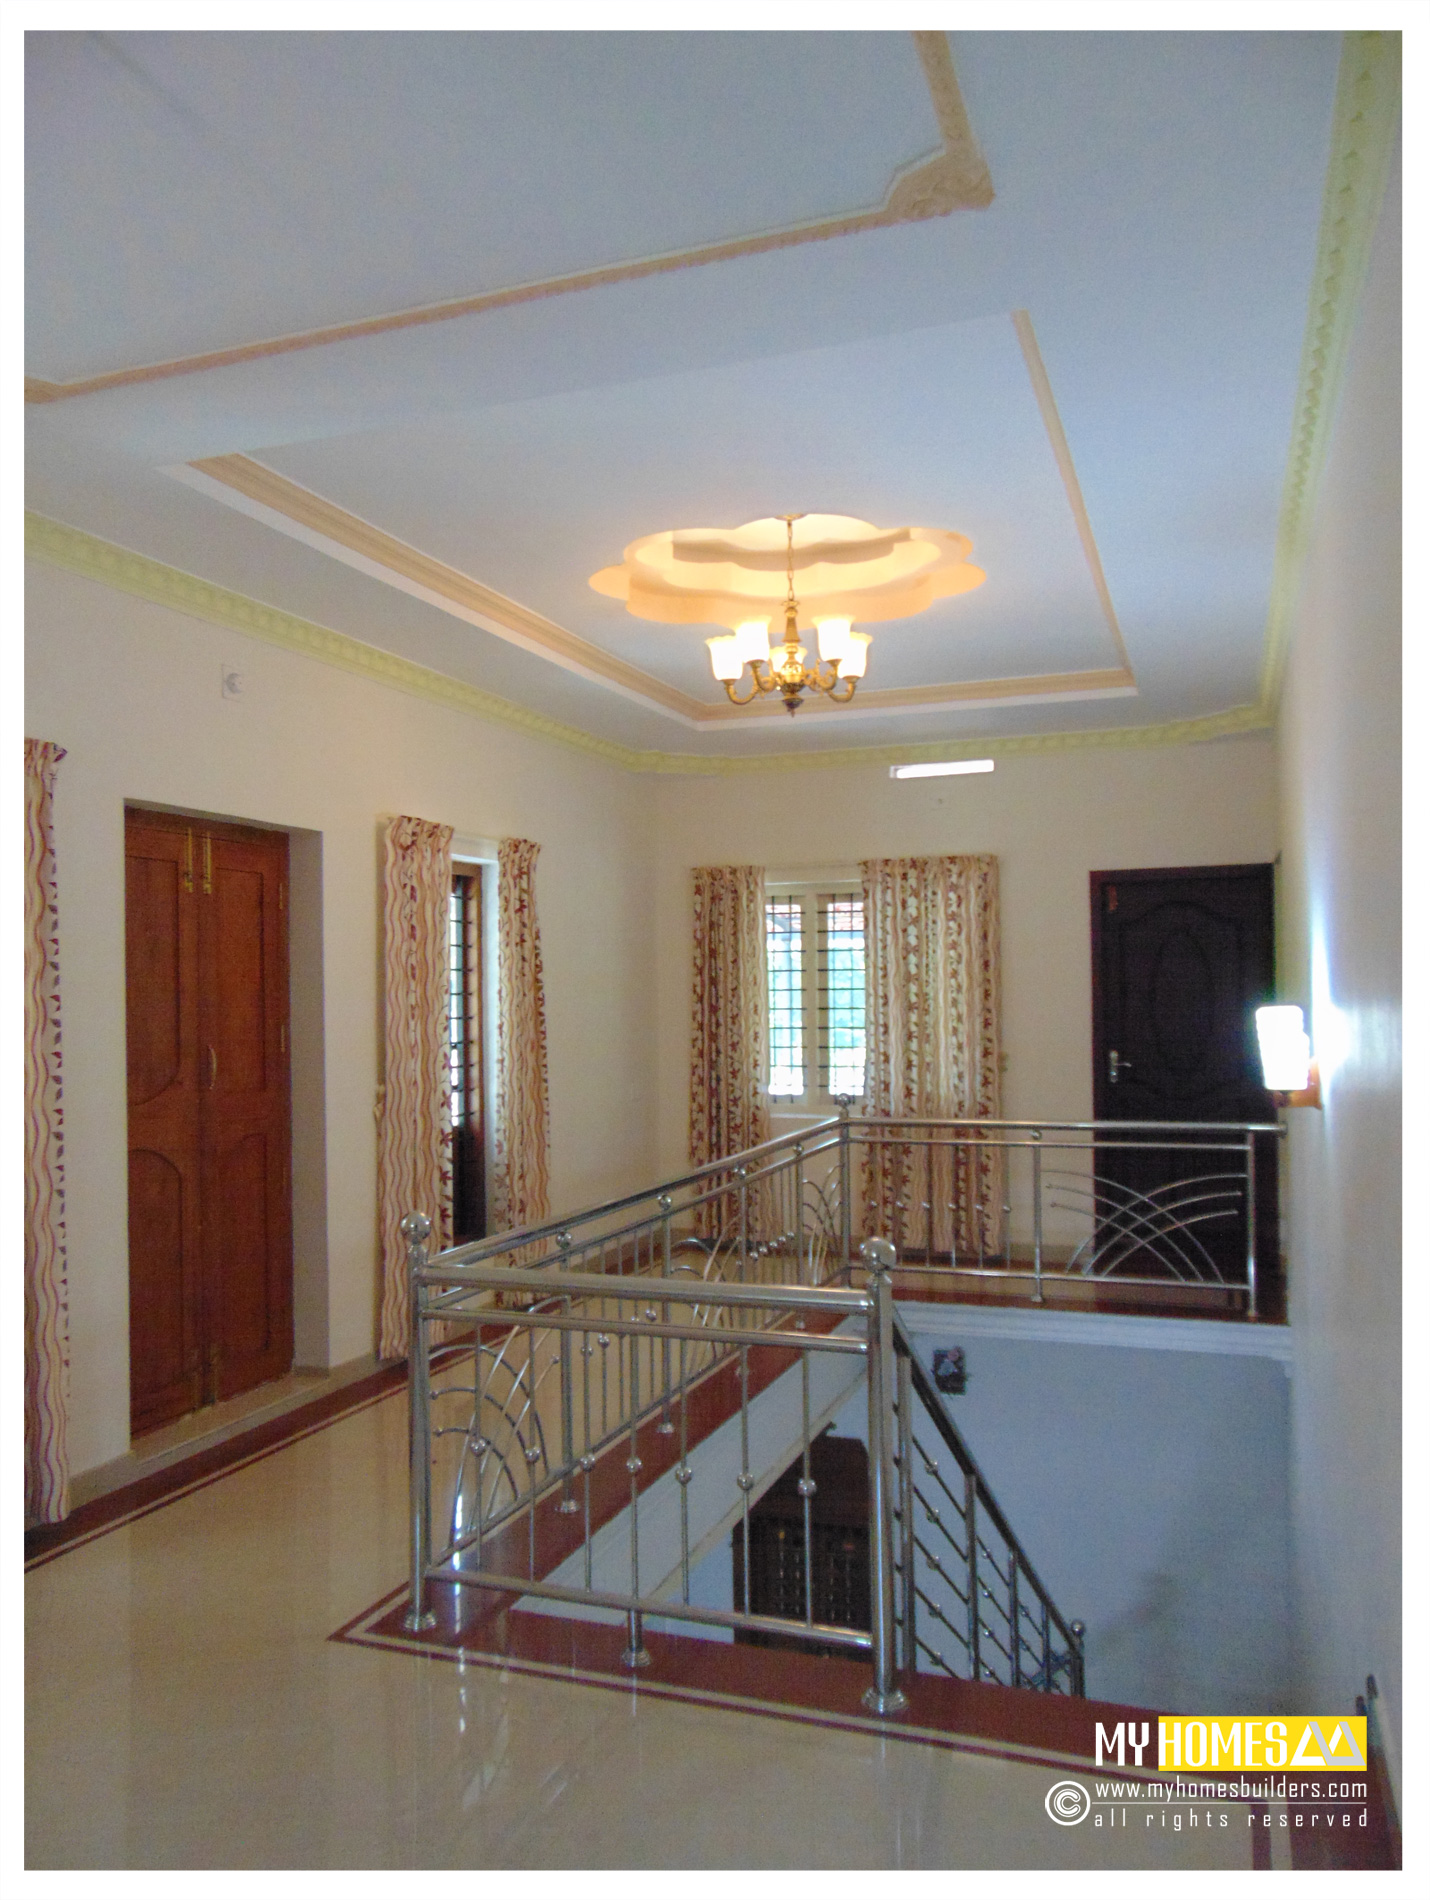 kerala staircase interior designs, staircase interior in kerala, kerala house saircases